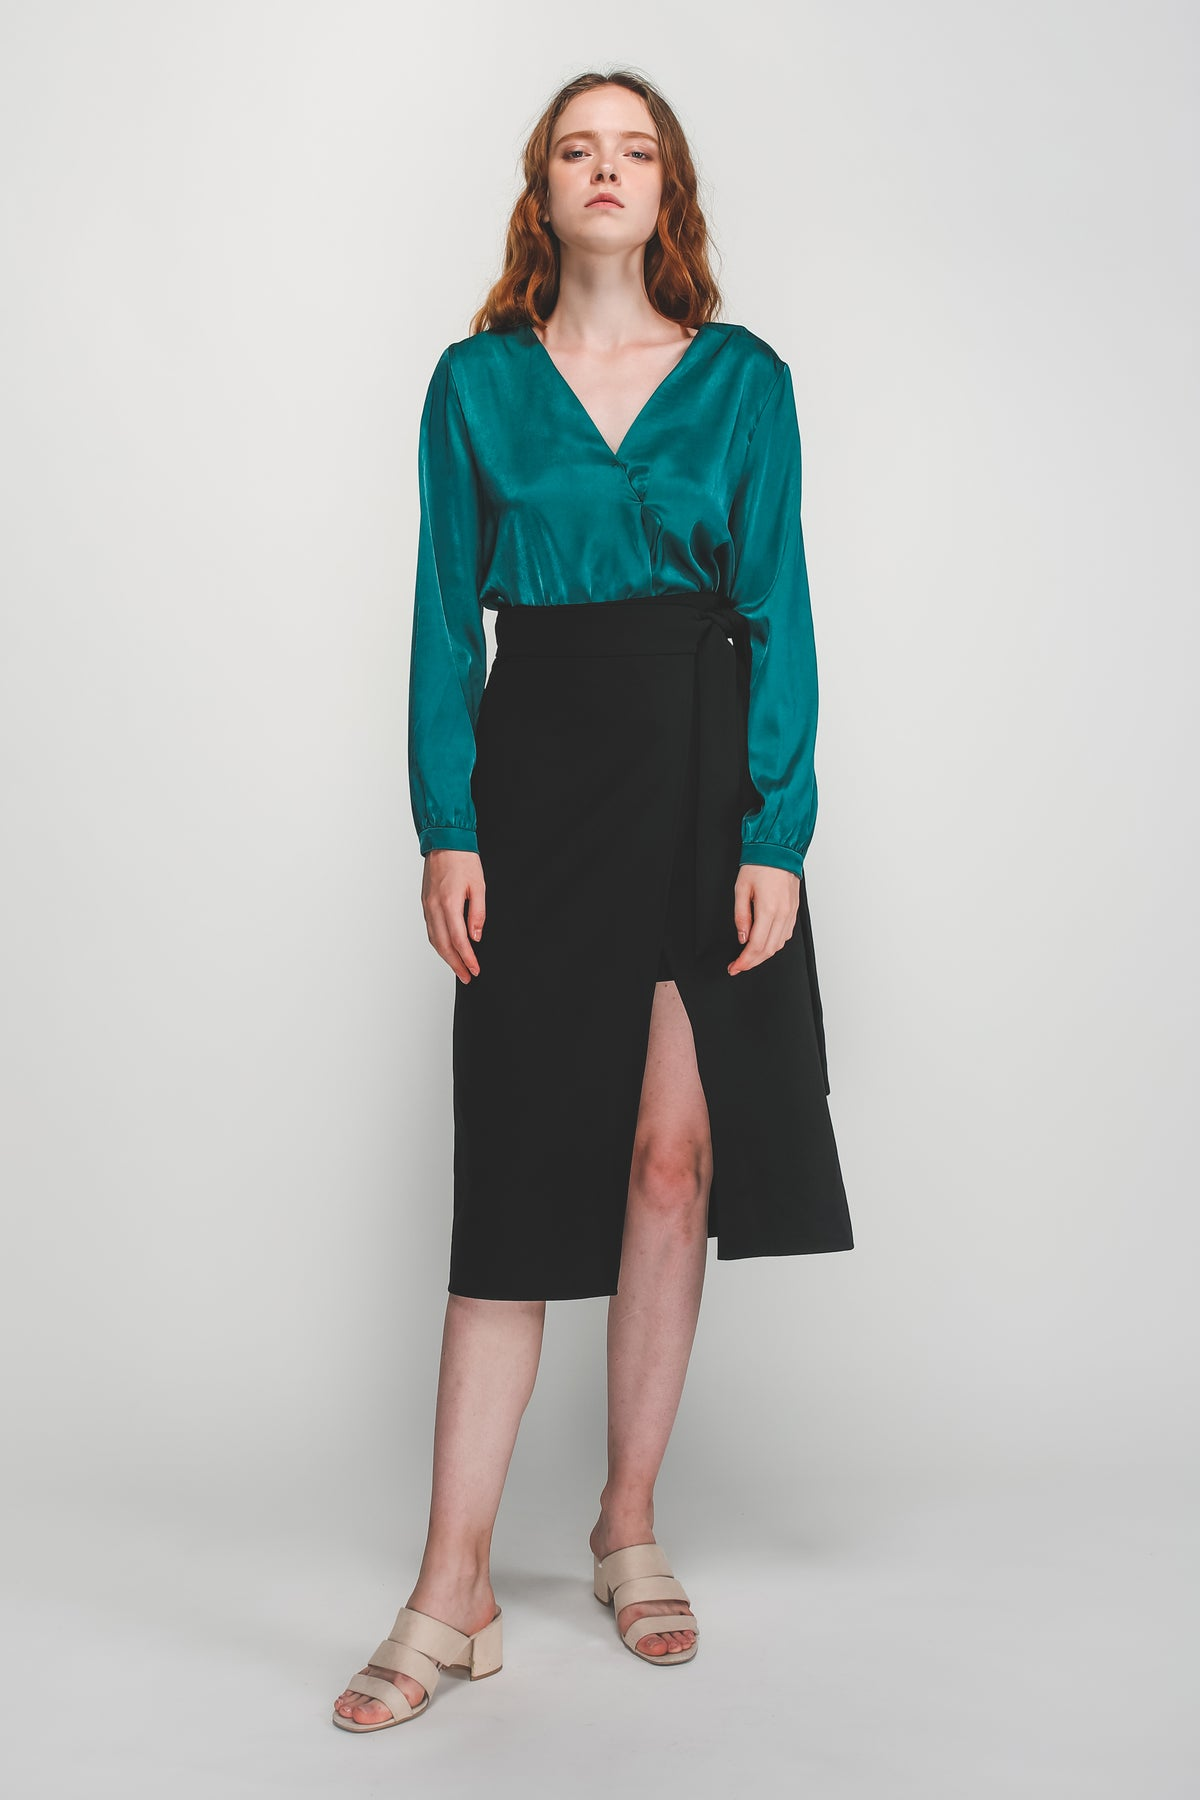 Classic V-Neck Blouse In Teal Sheen